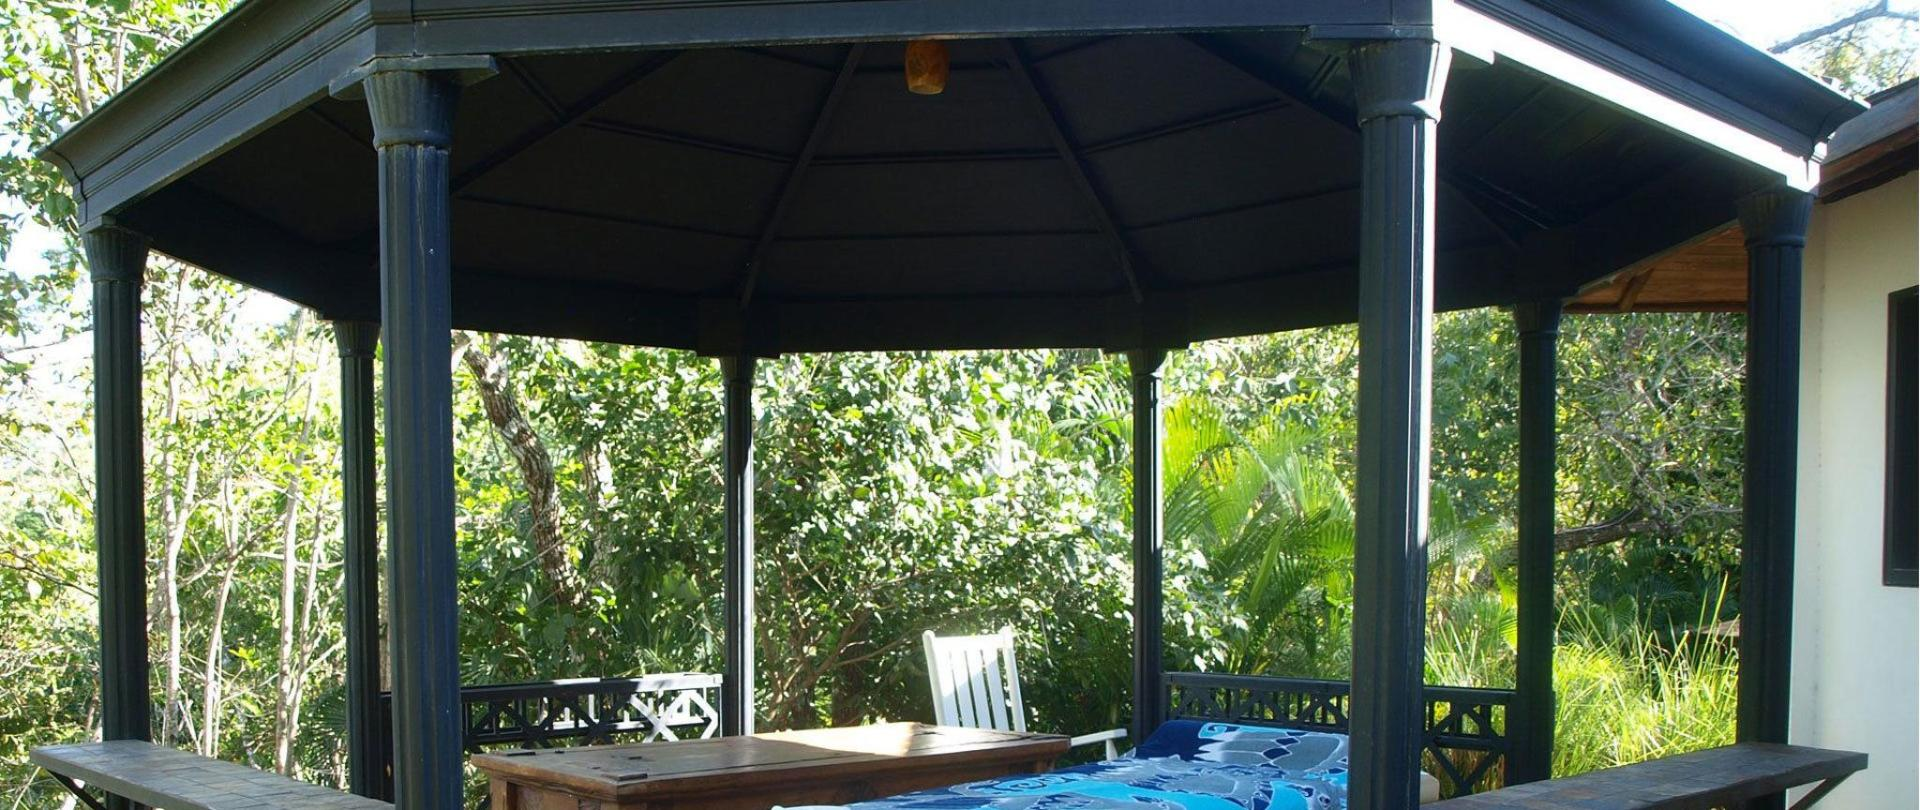 massage-gazebo-2.JPG